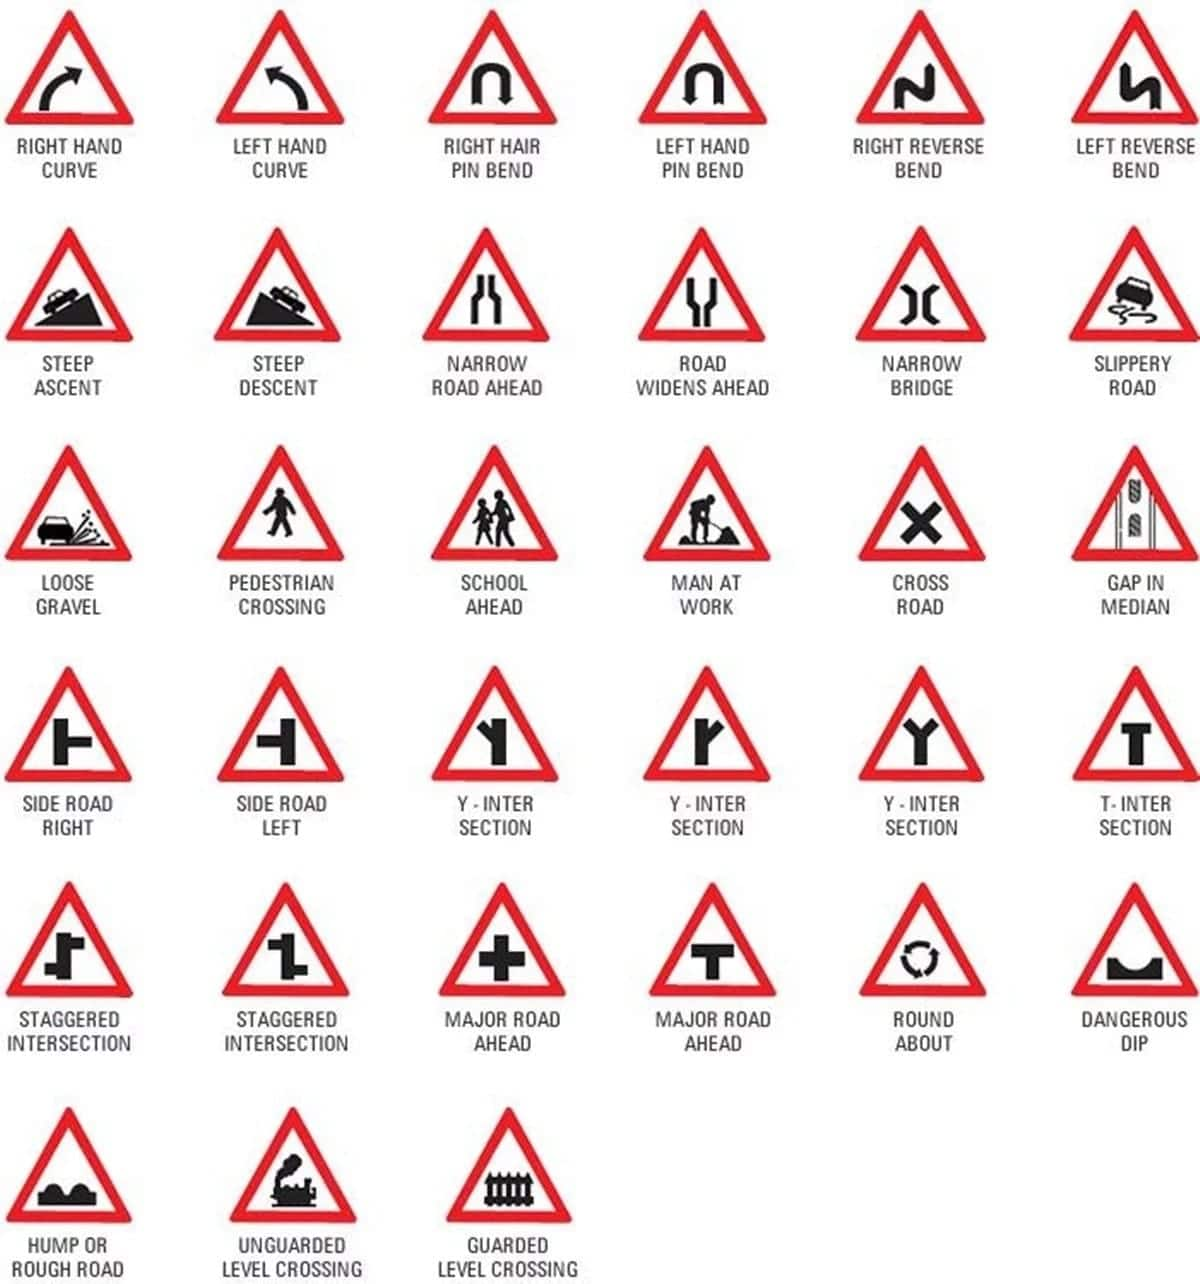 Road Signs And Their Meaning In Ghana Yen